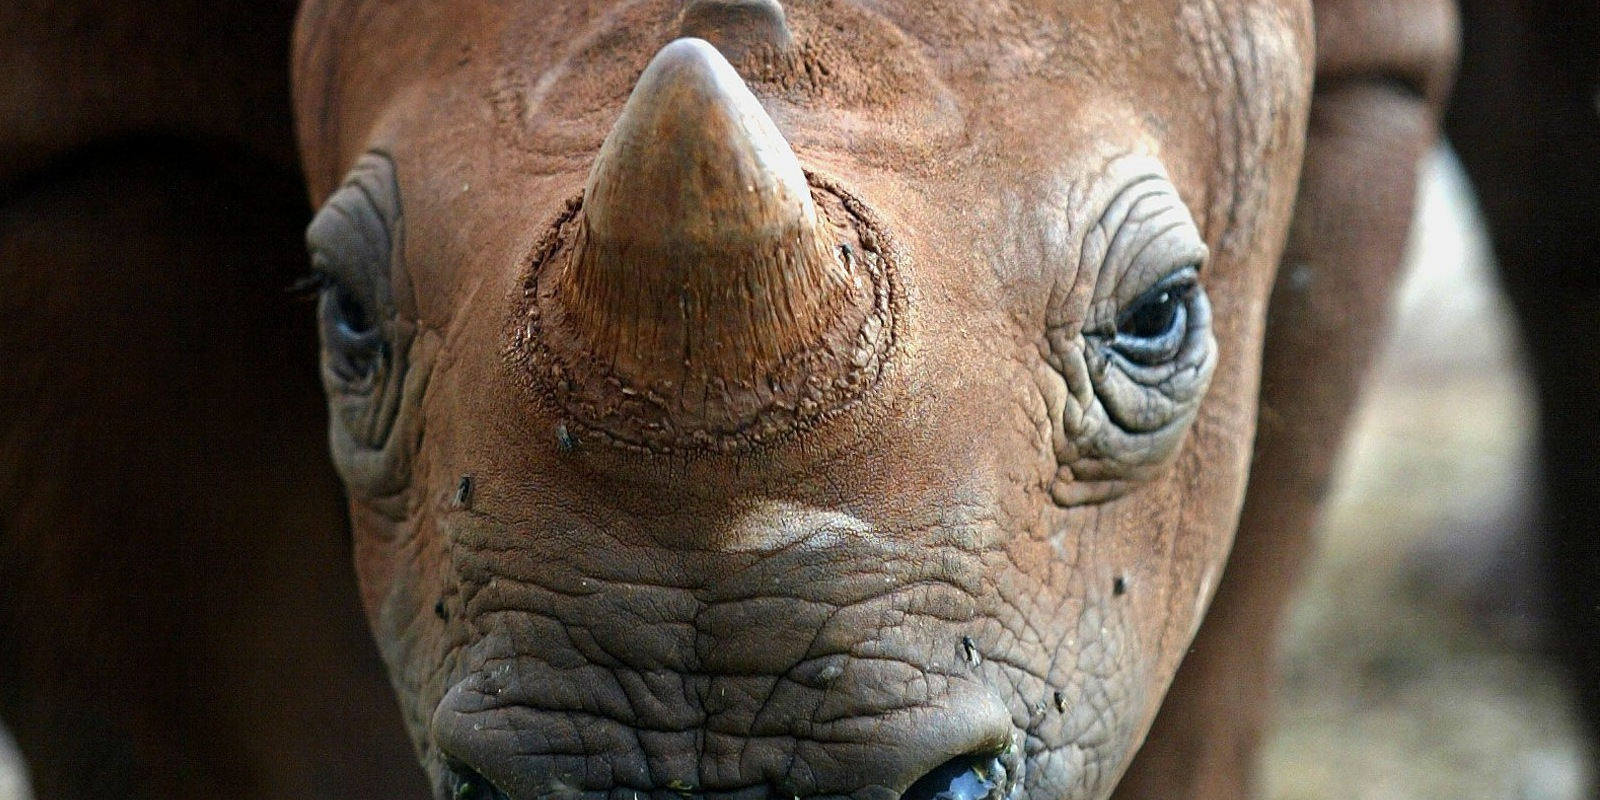 South Africa pushes for trade in endangered wildlife